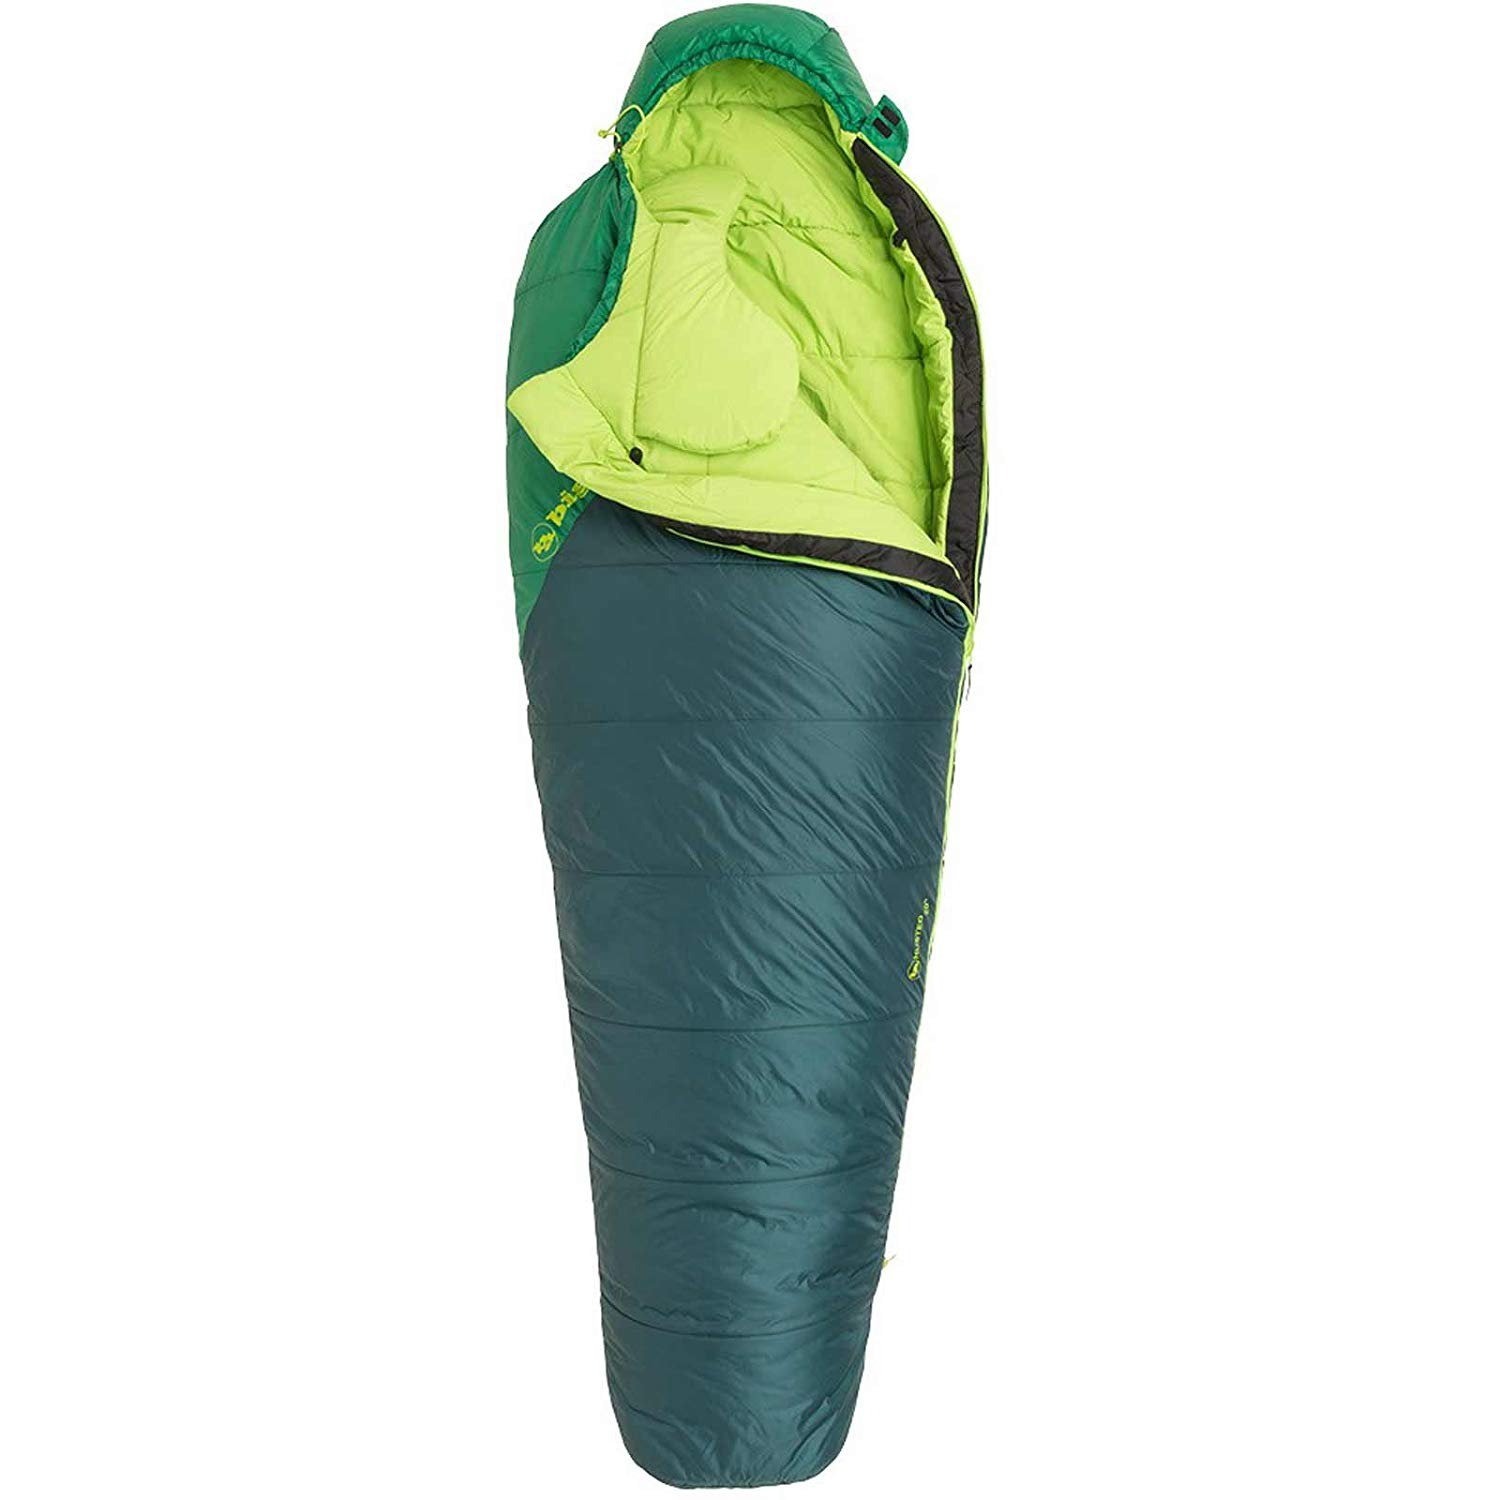 An image related to Big Agnes Husted Men's 20 Degree Single Lightweight Polyester Mummy Sleeping Bag